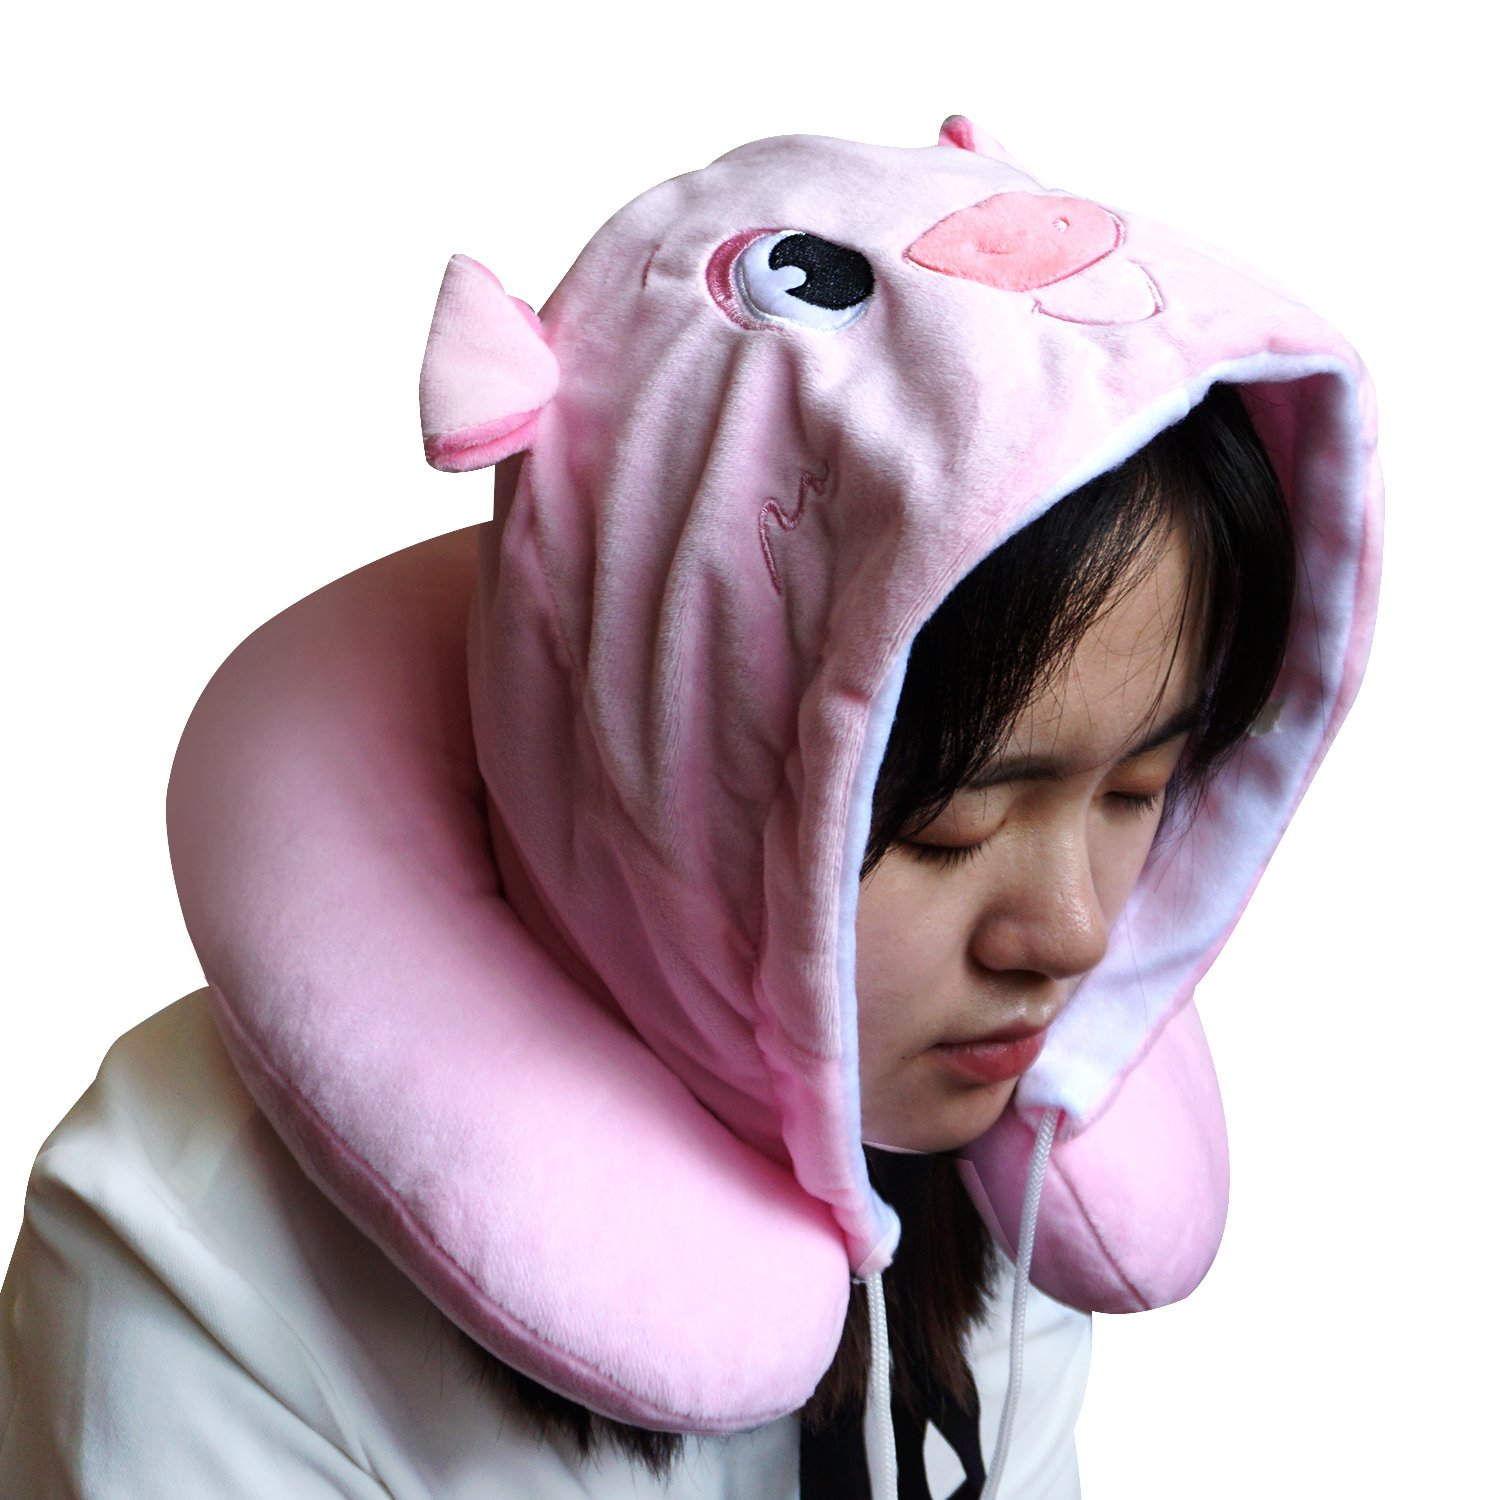 LOVOUS Cute Cartoon Animal Hooded Travel Neck Support Pillow Soft Plush Toy Comfortable U Shaped Pillow with Hat for Airplane, Office (Pink Pig) by LOVOUS (Image #3)